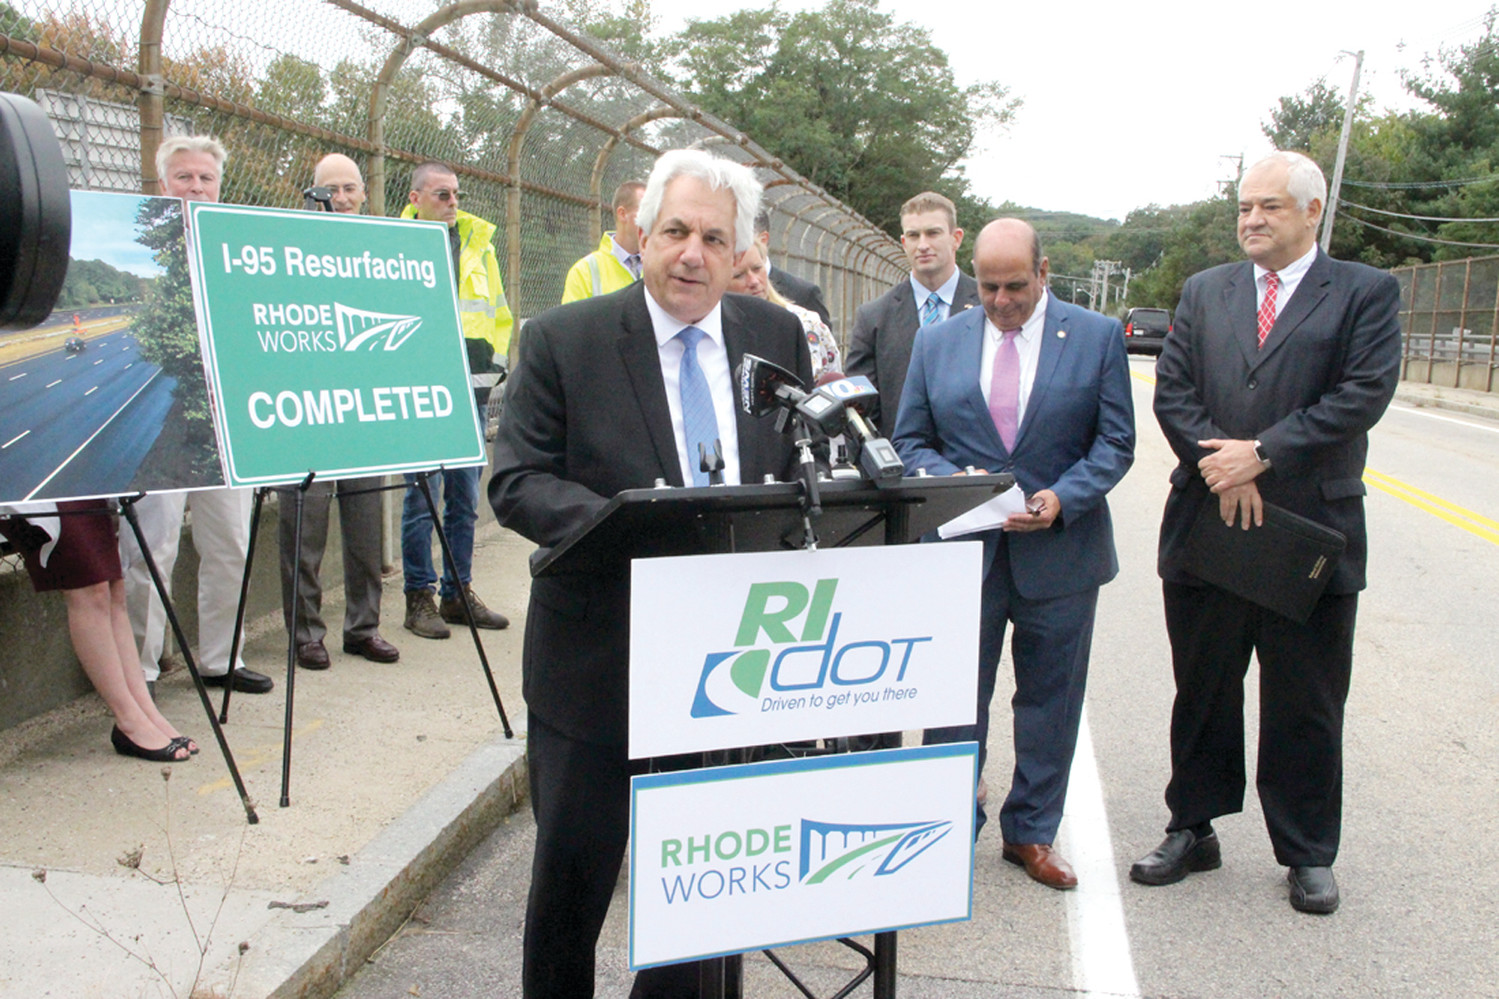 ROAD TALK: DOT director Peter Alviti, joined by state and local officials, addressed the news media Thursday afternoon from the Cowesett Road bridge over Route 95.